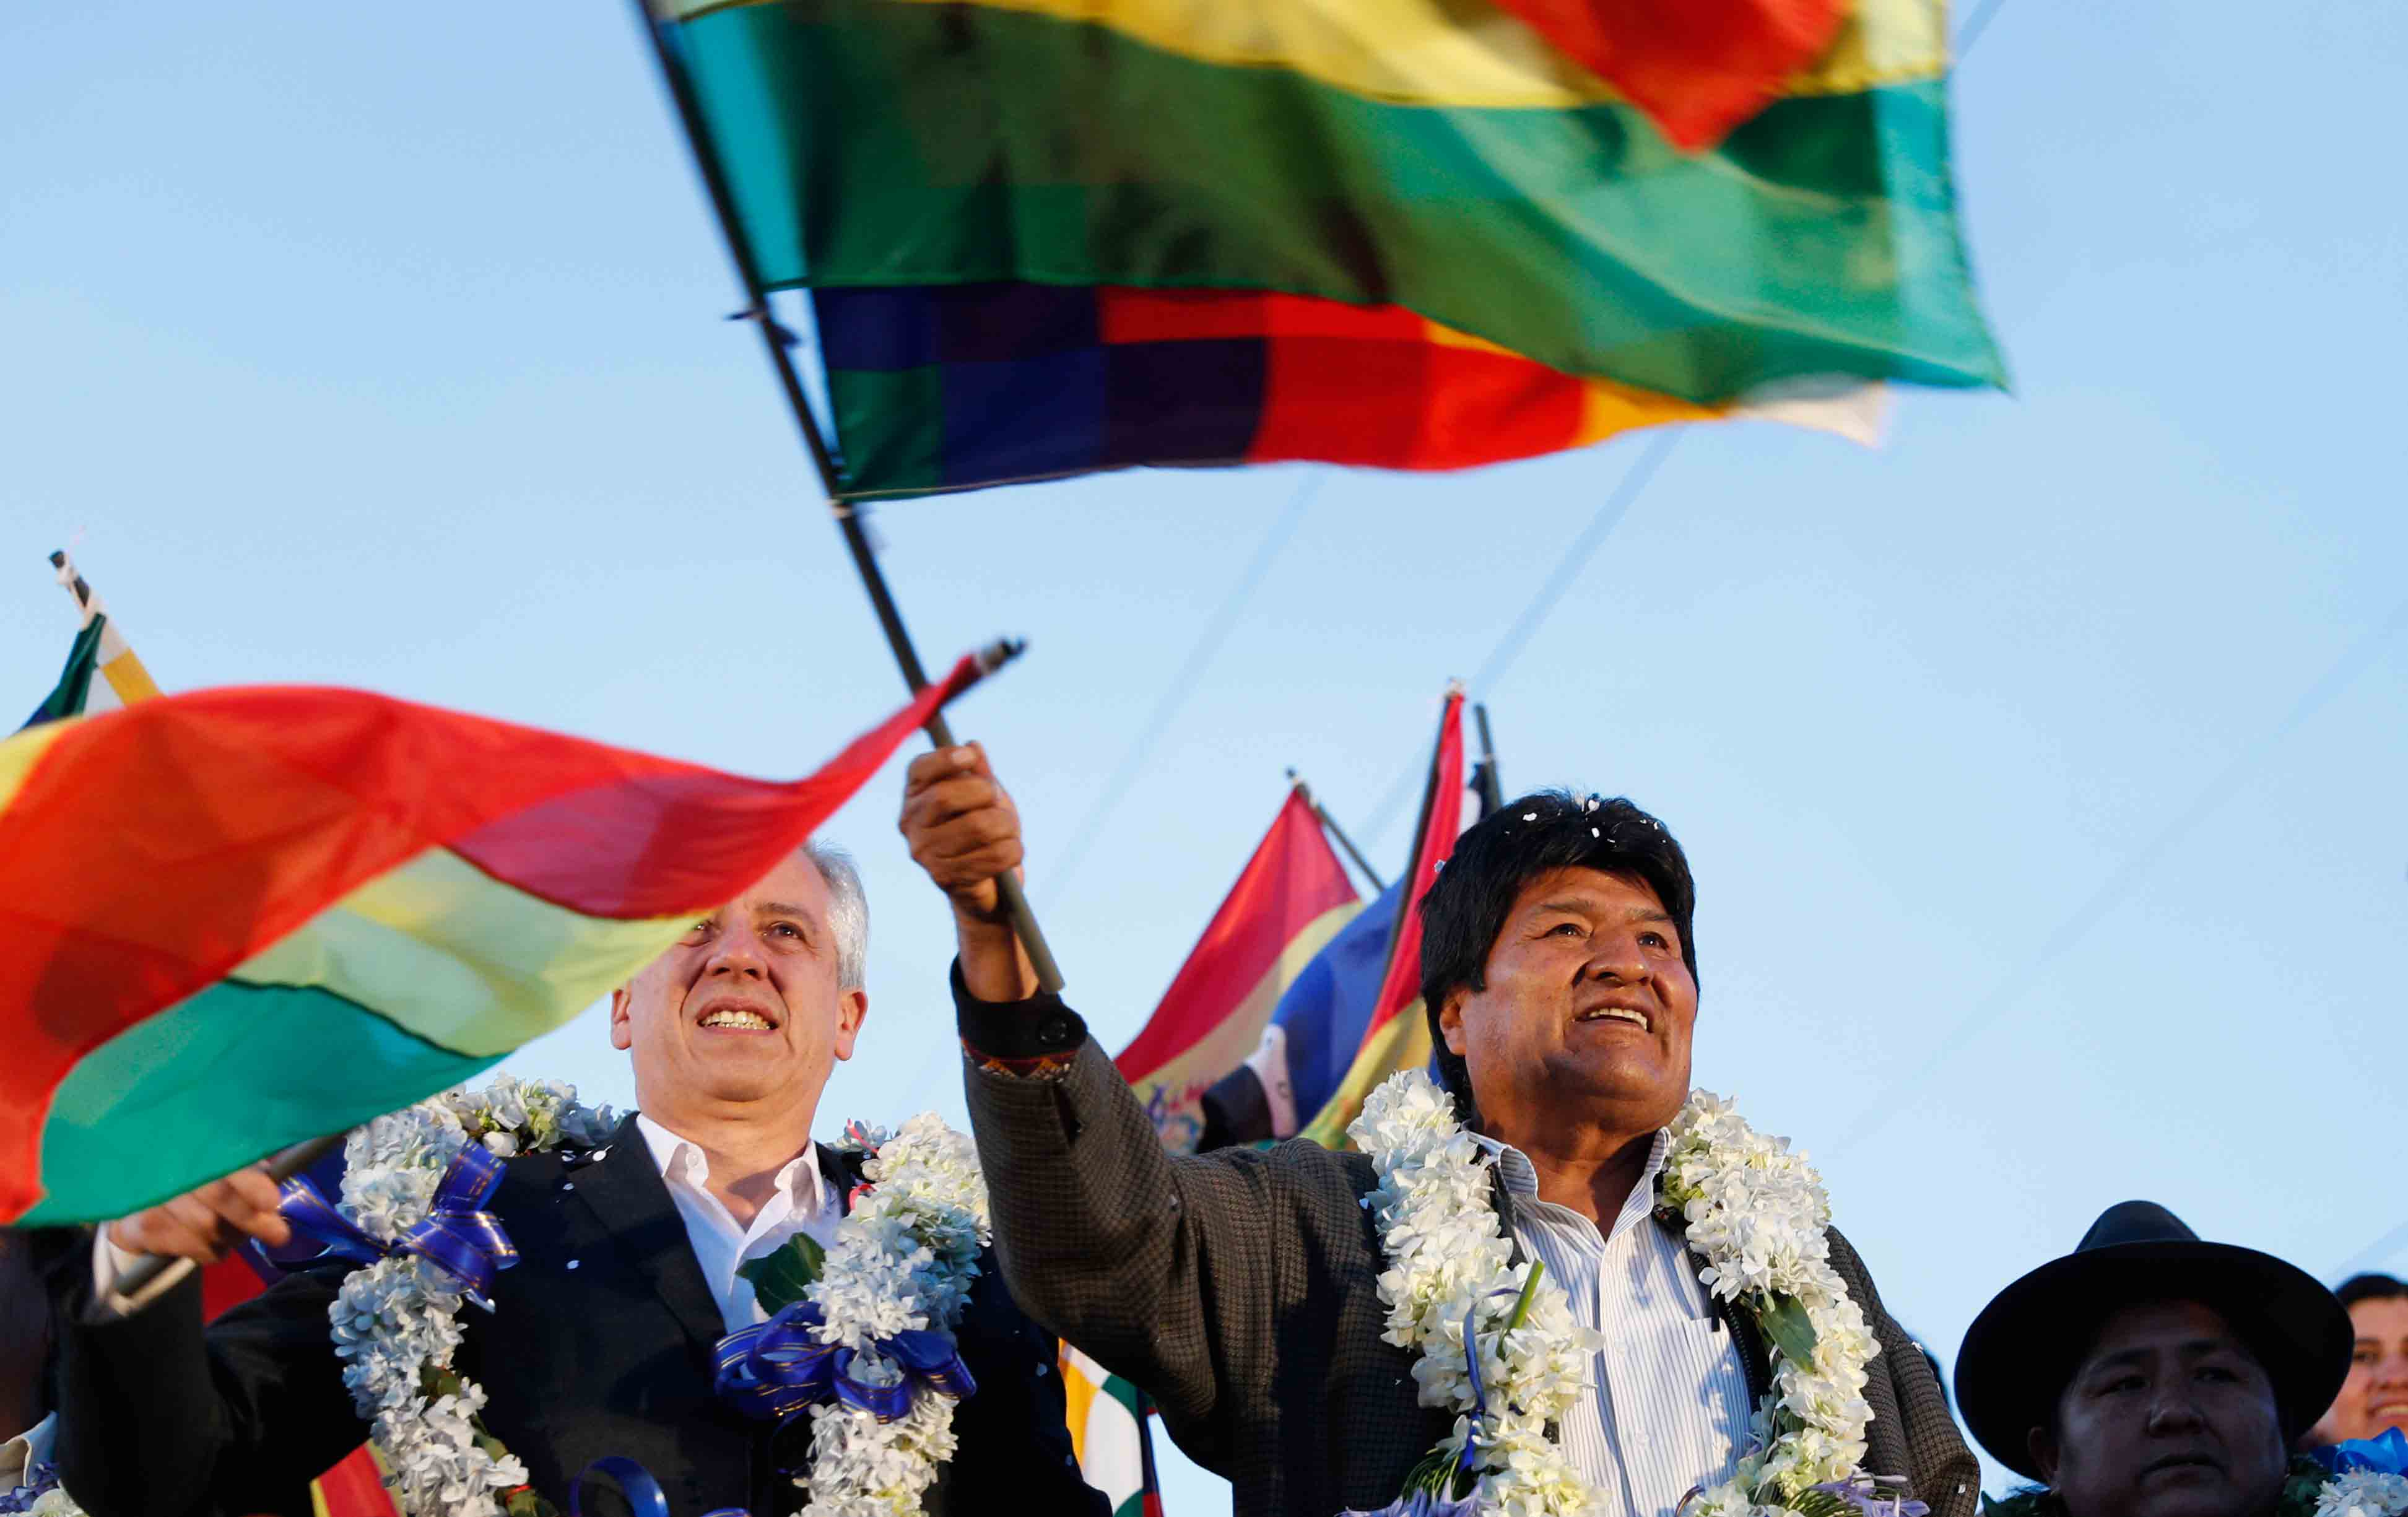 https://www.thenation.com/wp-content/uploads/2019/11/bolivia-elections-evo-morales-ap-img.jpg?scale=896&compress=80